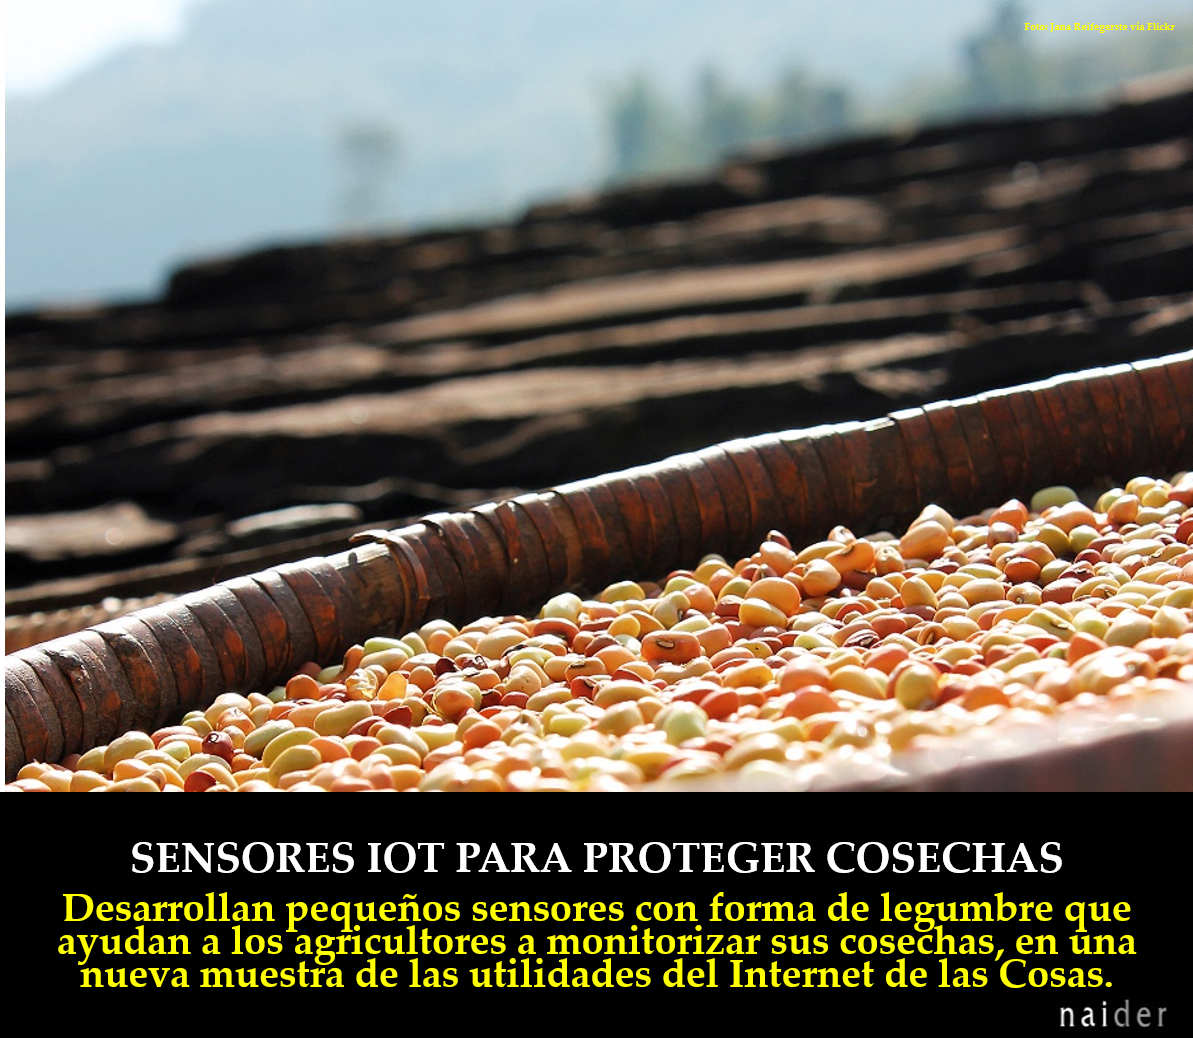 IOT para proteger cosechas infopost.jpg